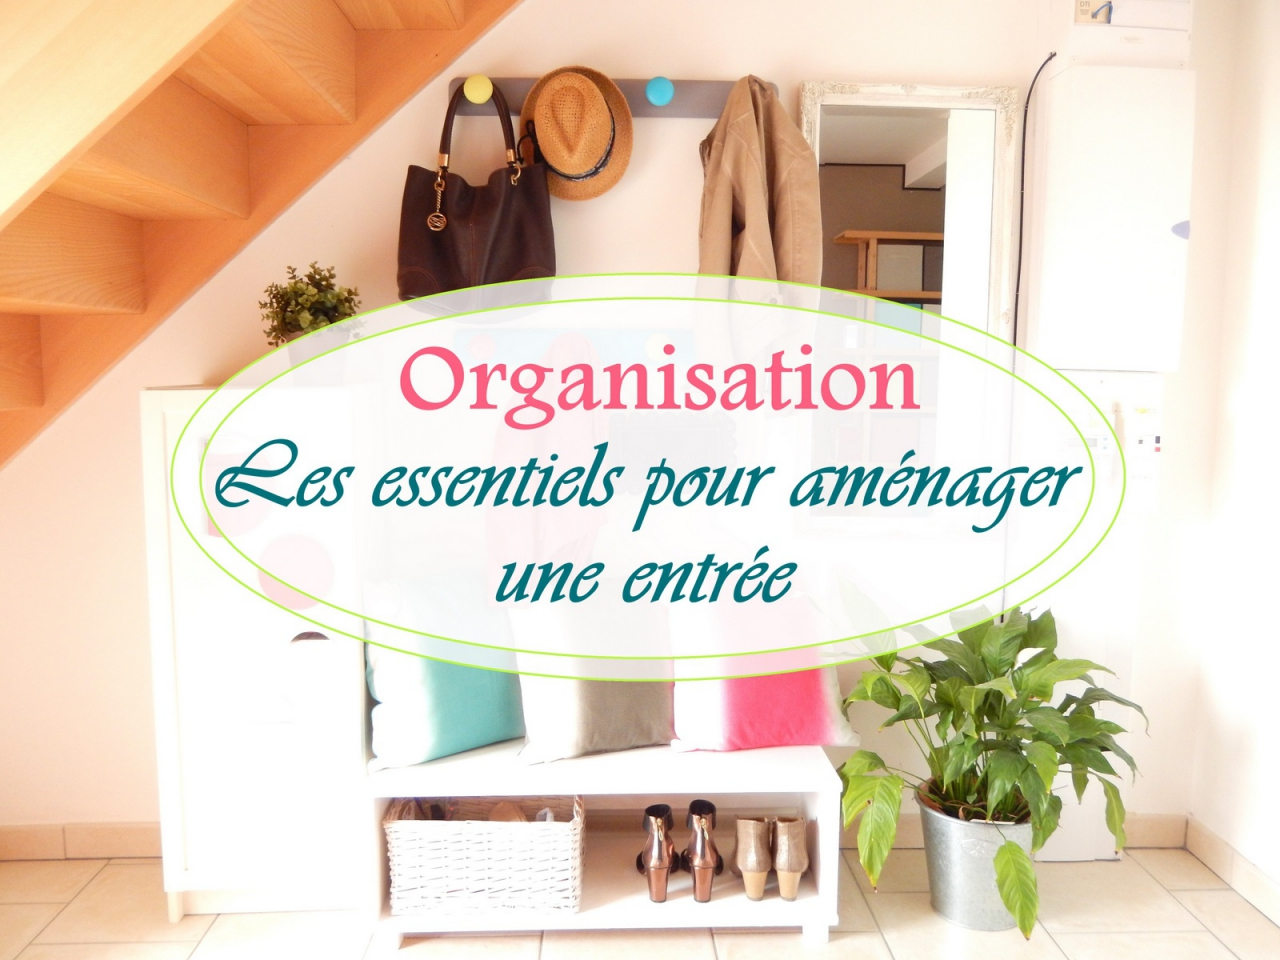 organisation les essentiels pour am nager une entr e mon carnet d co diy organisation. Black Bedroom Furniture Sets. Home Design Ideas